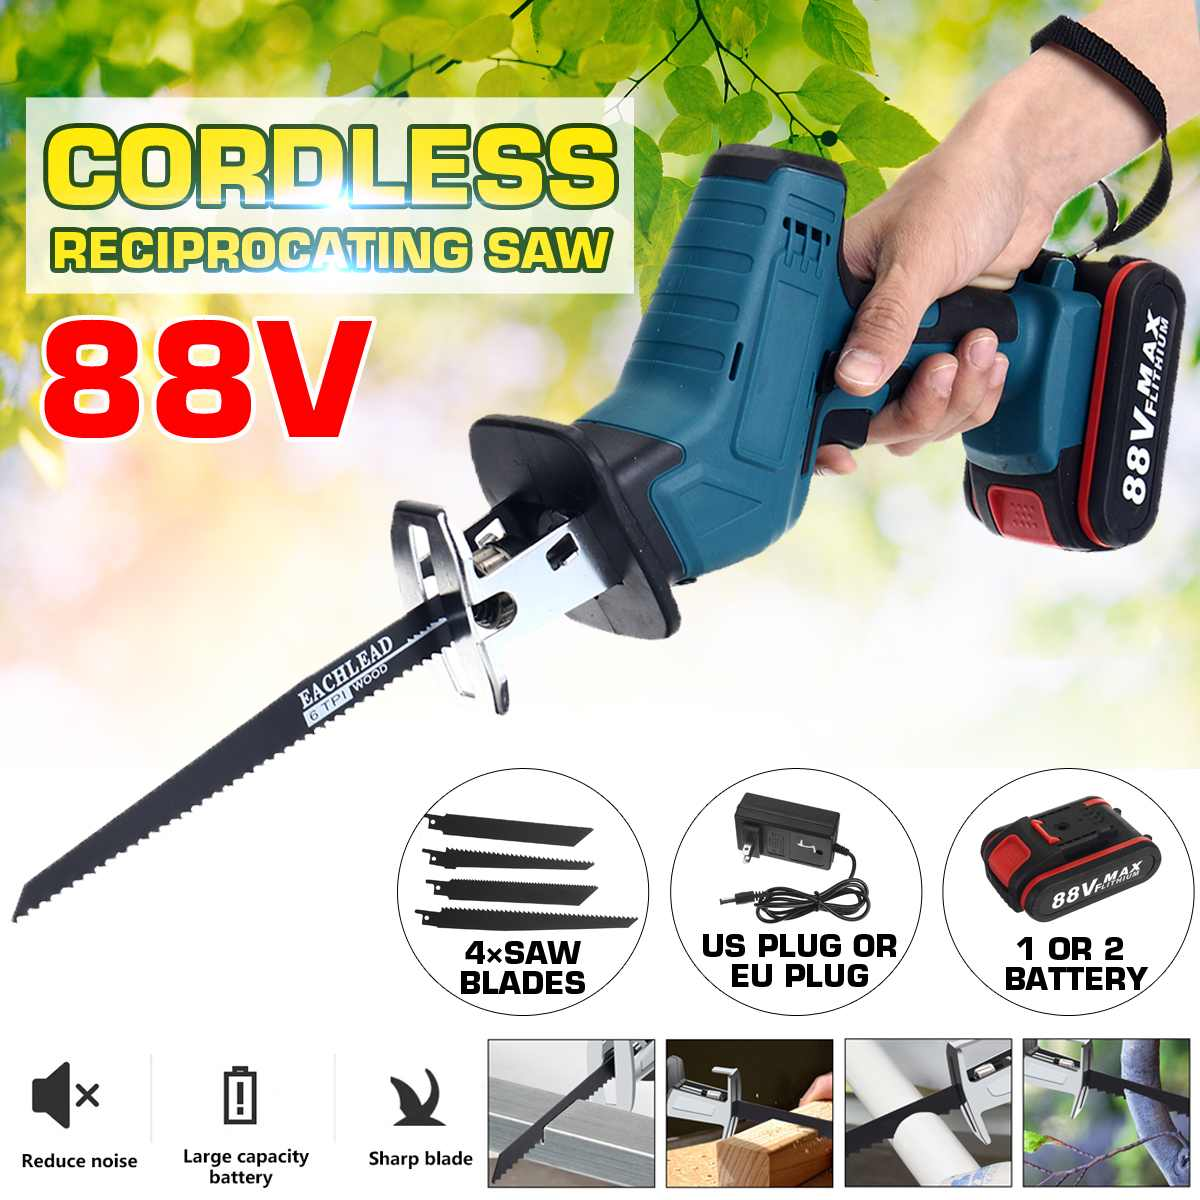 88V Cordless Reciprocating Saw With 4 Blades Rechargeable Electric Saw for Sawing Branches Metal PVC Wood Cutting Machine Tool